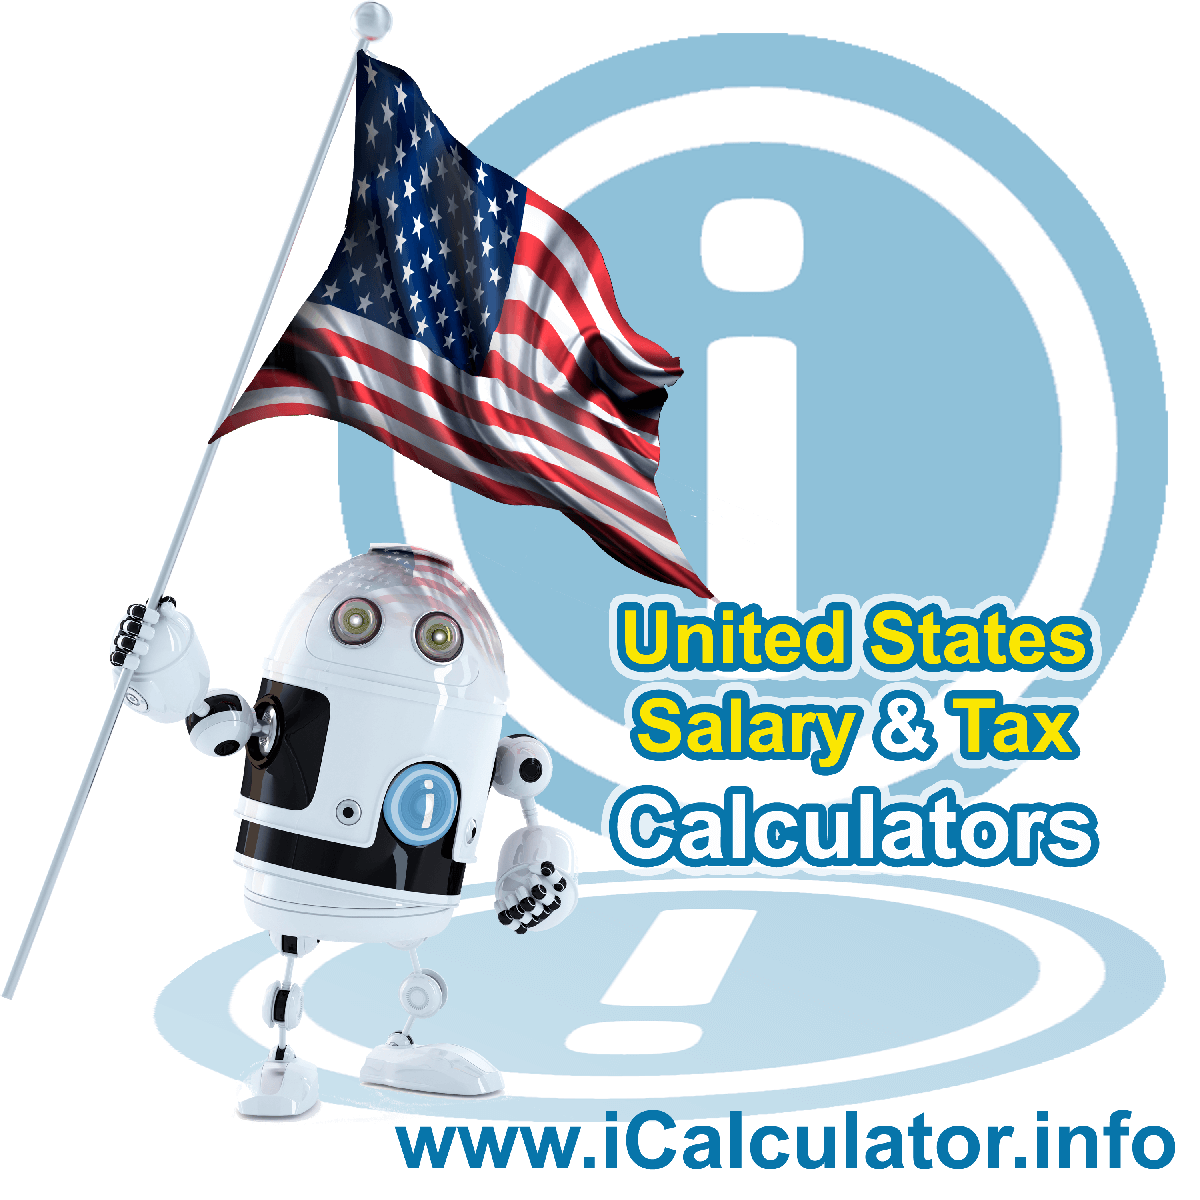 US Salary Calculator 2021 | iCalculator | The United States Salary Calculator allows you to quickly calculate your salary after tax. The US Salary Calculator includes Federal and State income tax, medicare, social security, capital gains and other income tax and salary deductions complete with supporting income tax tables